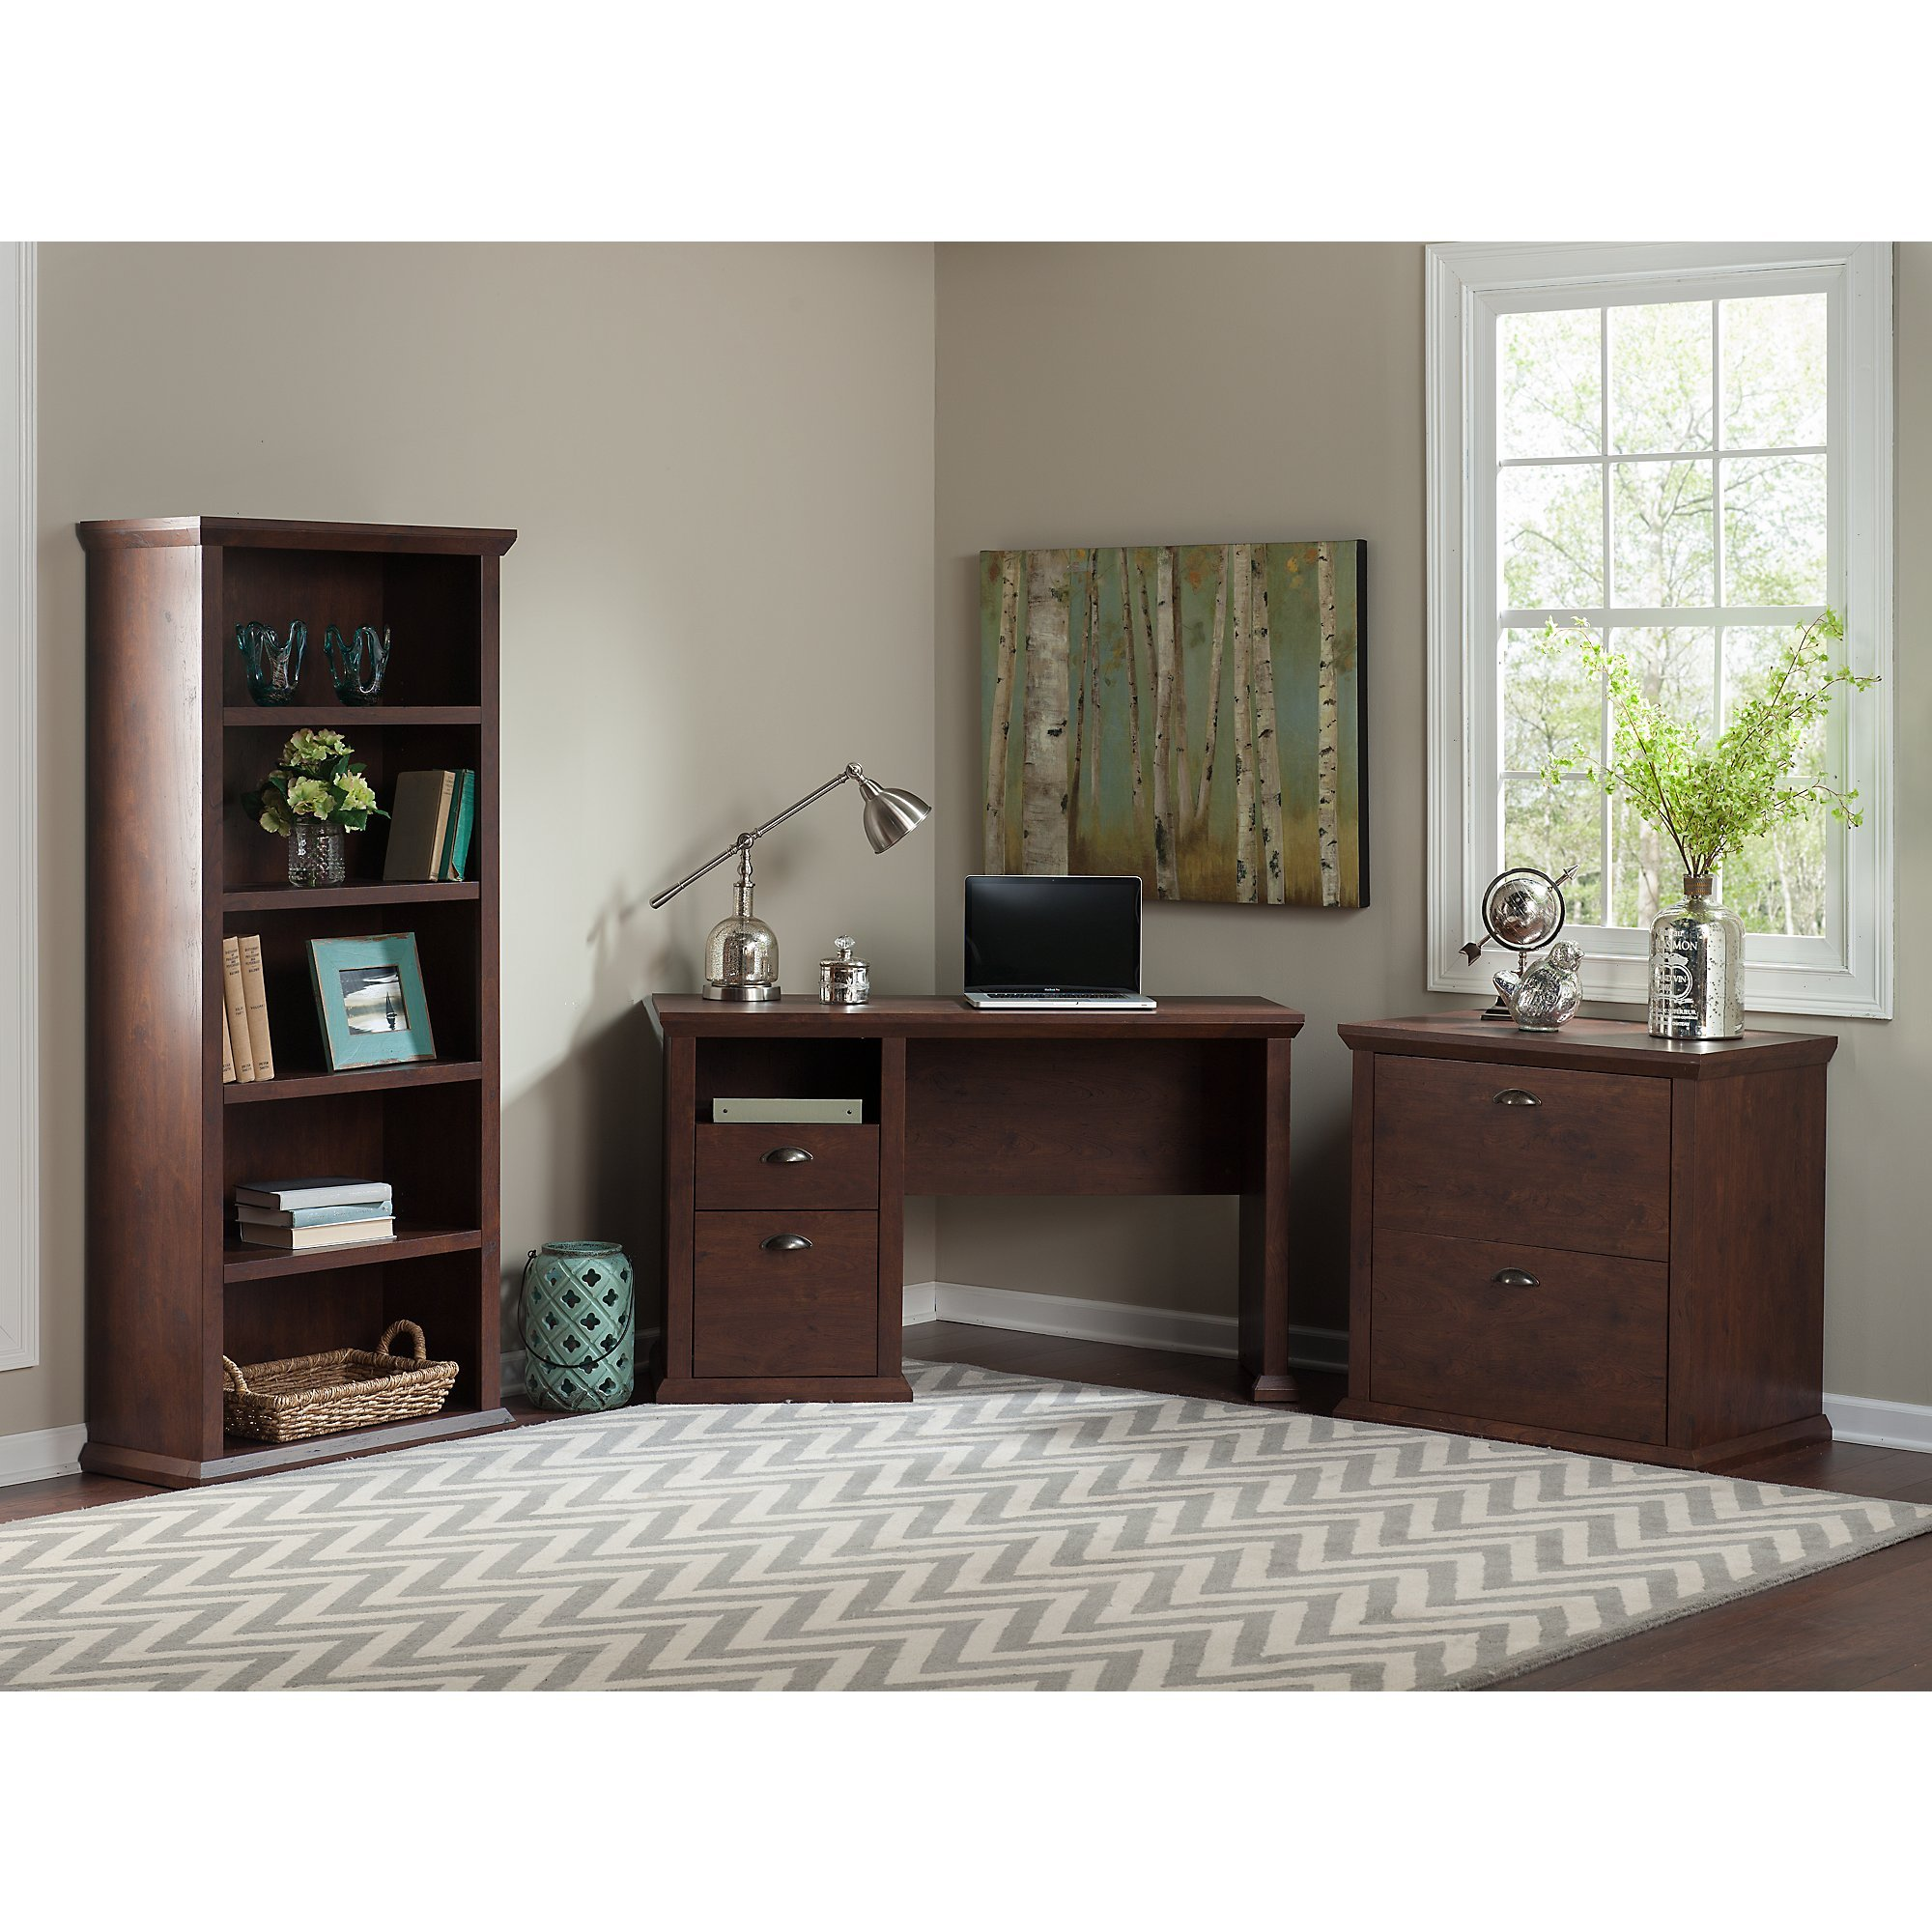 Bush Furniture Yorktown Home Office Desk with Bookcase and Lateral File Cabinet